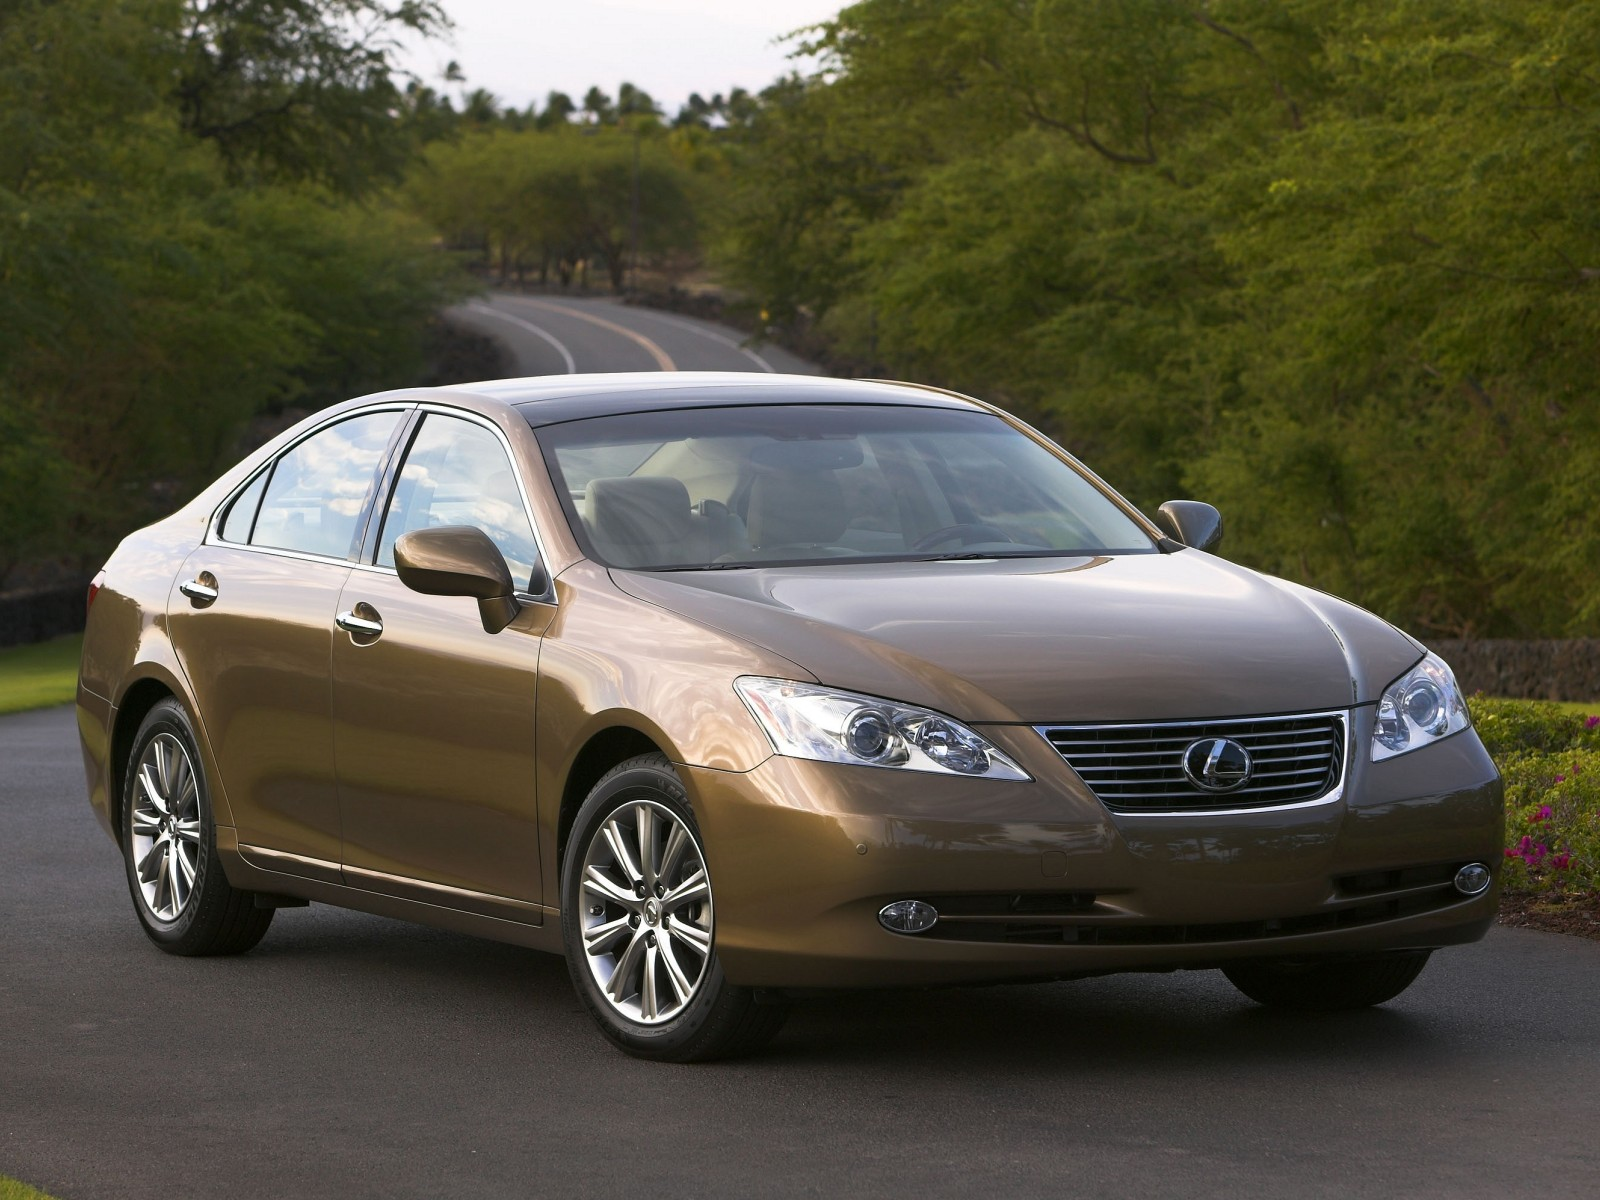 2009 lexus es 350 wallpapers pictures specifications. Black Bedroom Furniture Sets. Home Design Ideas